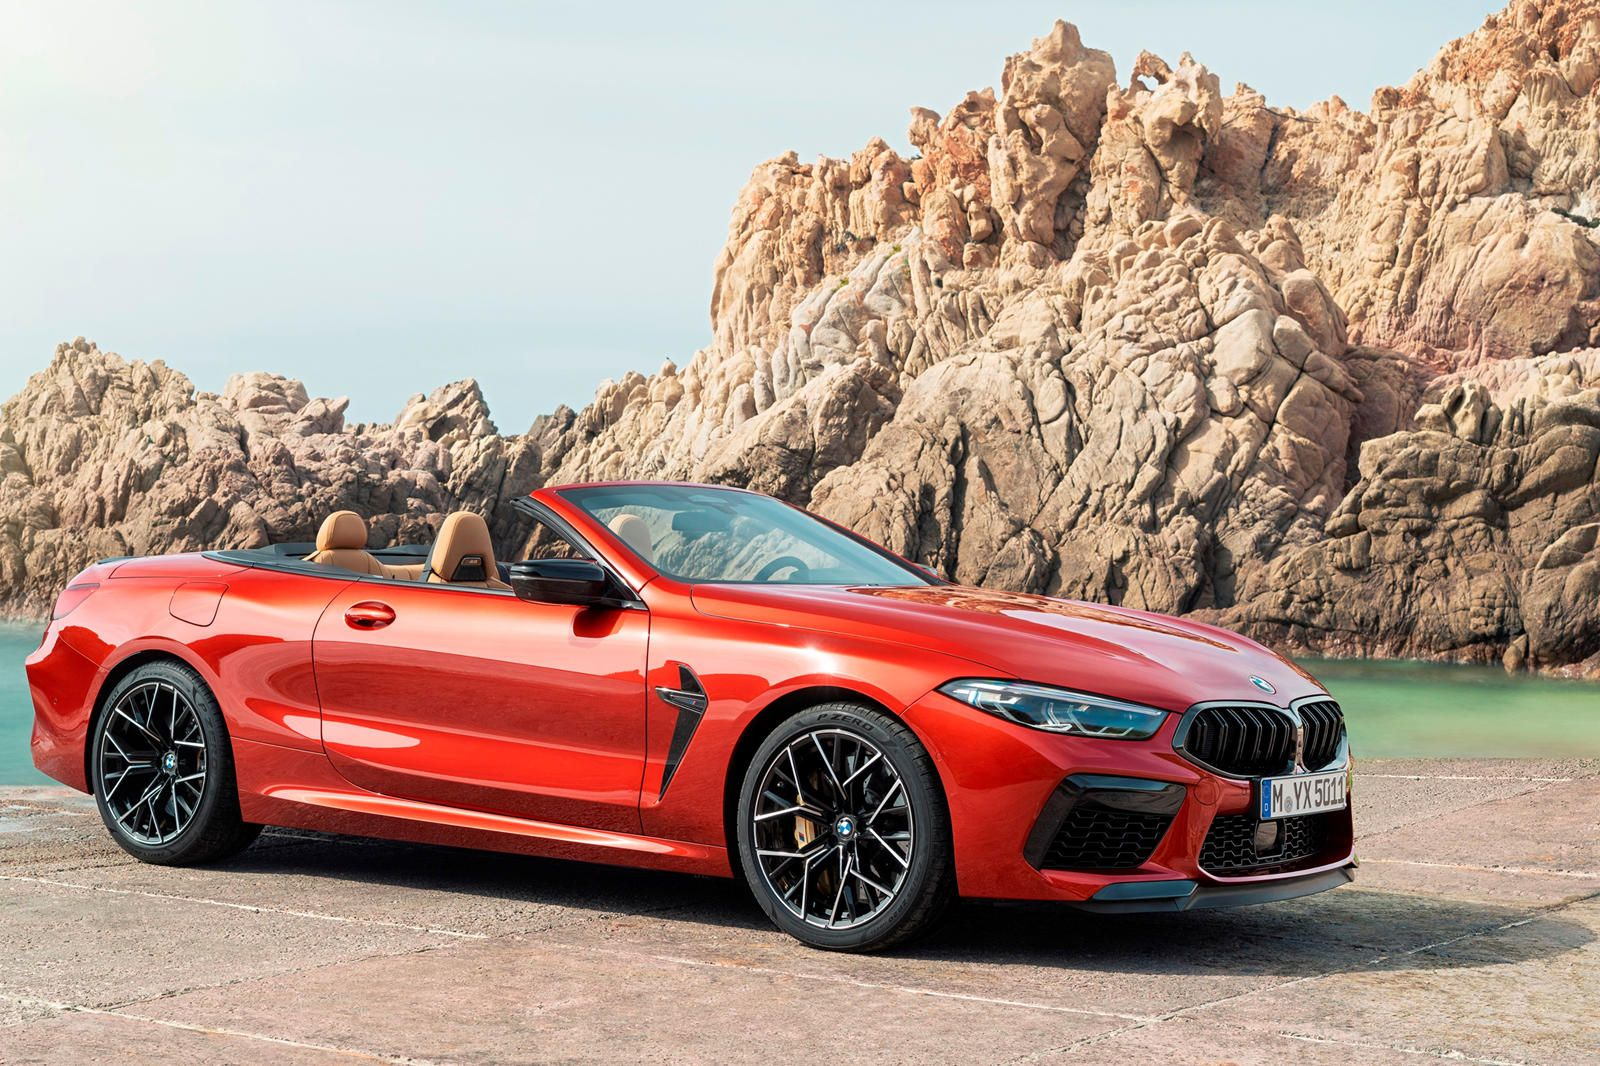 Check Out The New Bmw M8 Convertible Test Drive Review Price Details Interior Features Exterior Design In 2020 Bmw Bmw Convertible Bentley Continental Gt